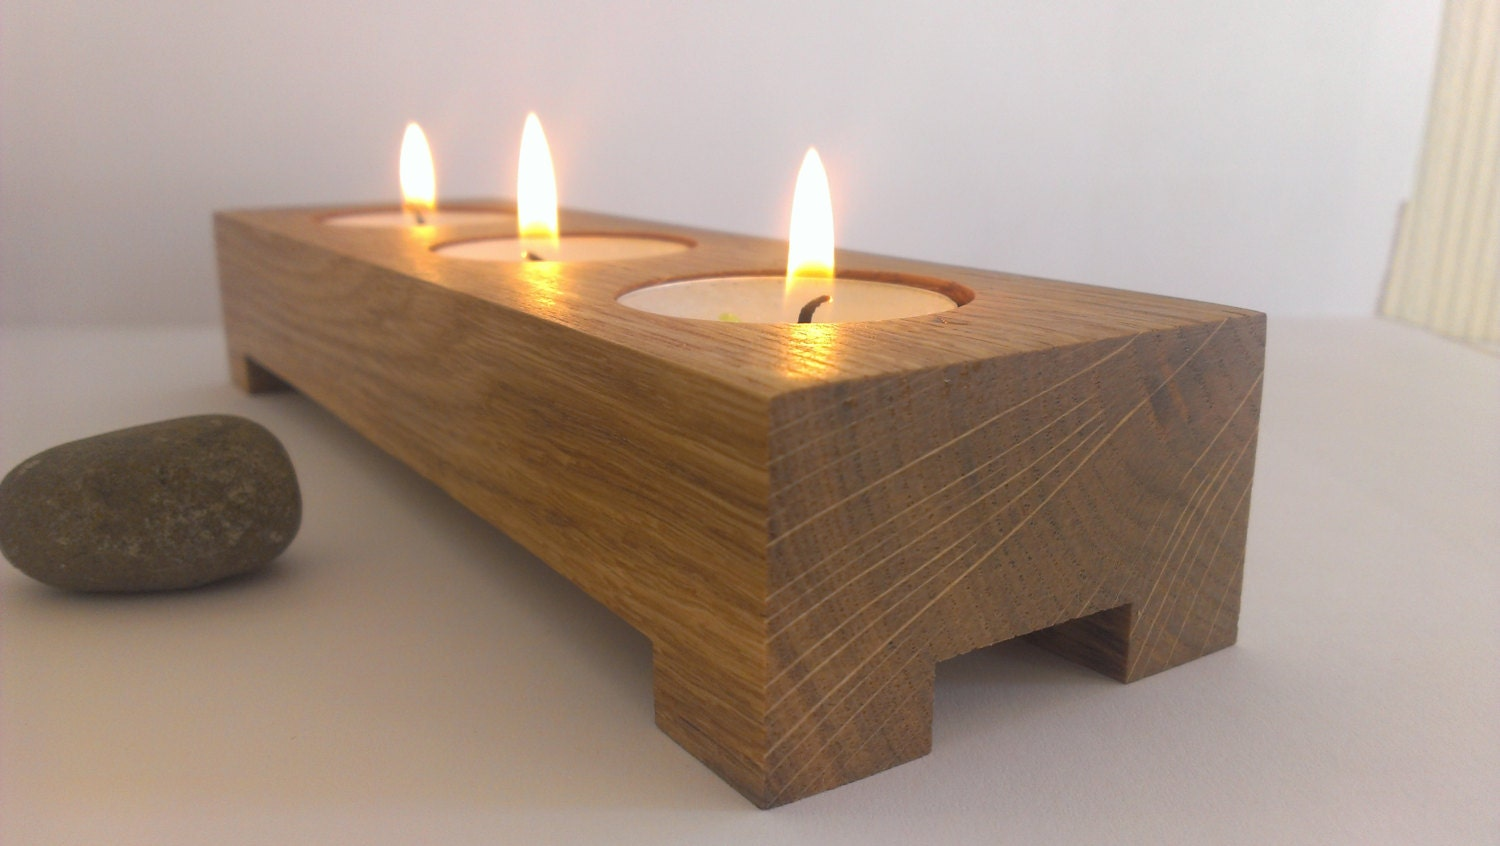 3 Tea Light Candle Holder Modern Look Candle Holder Wooden